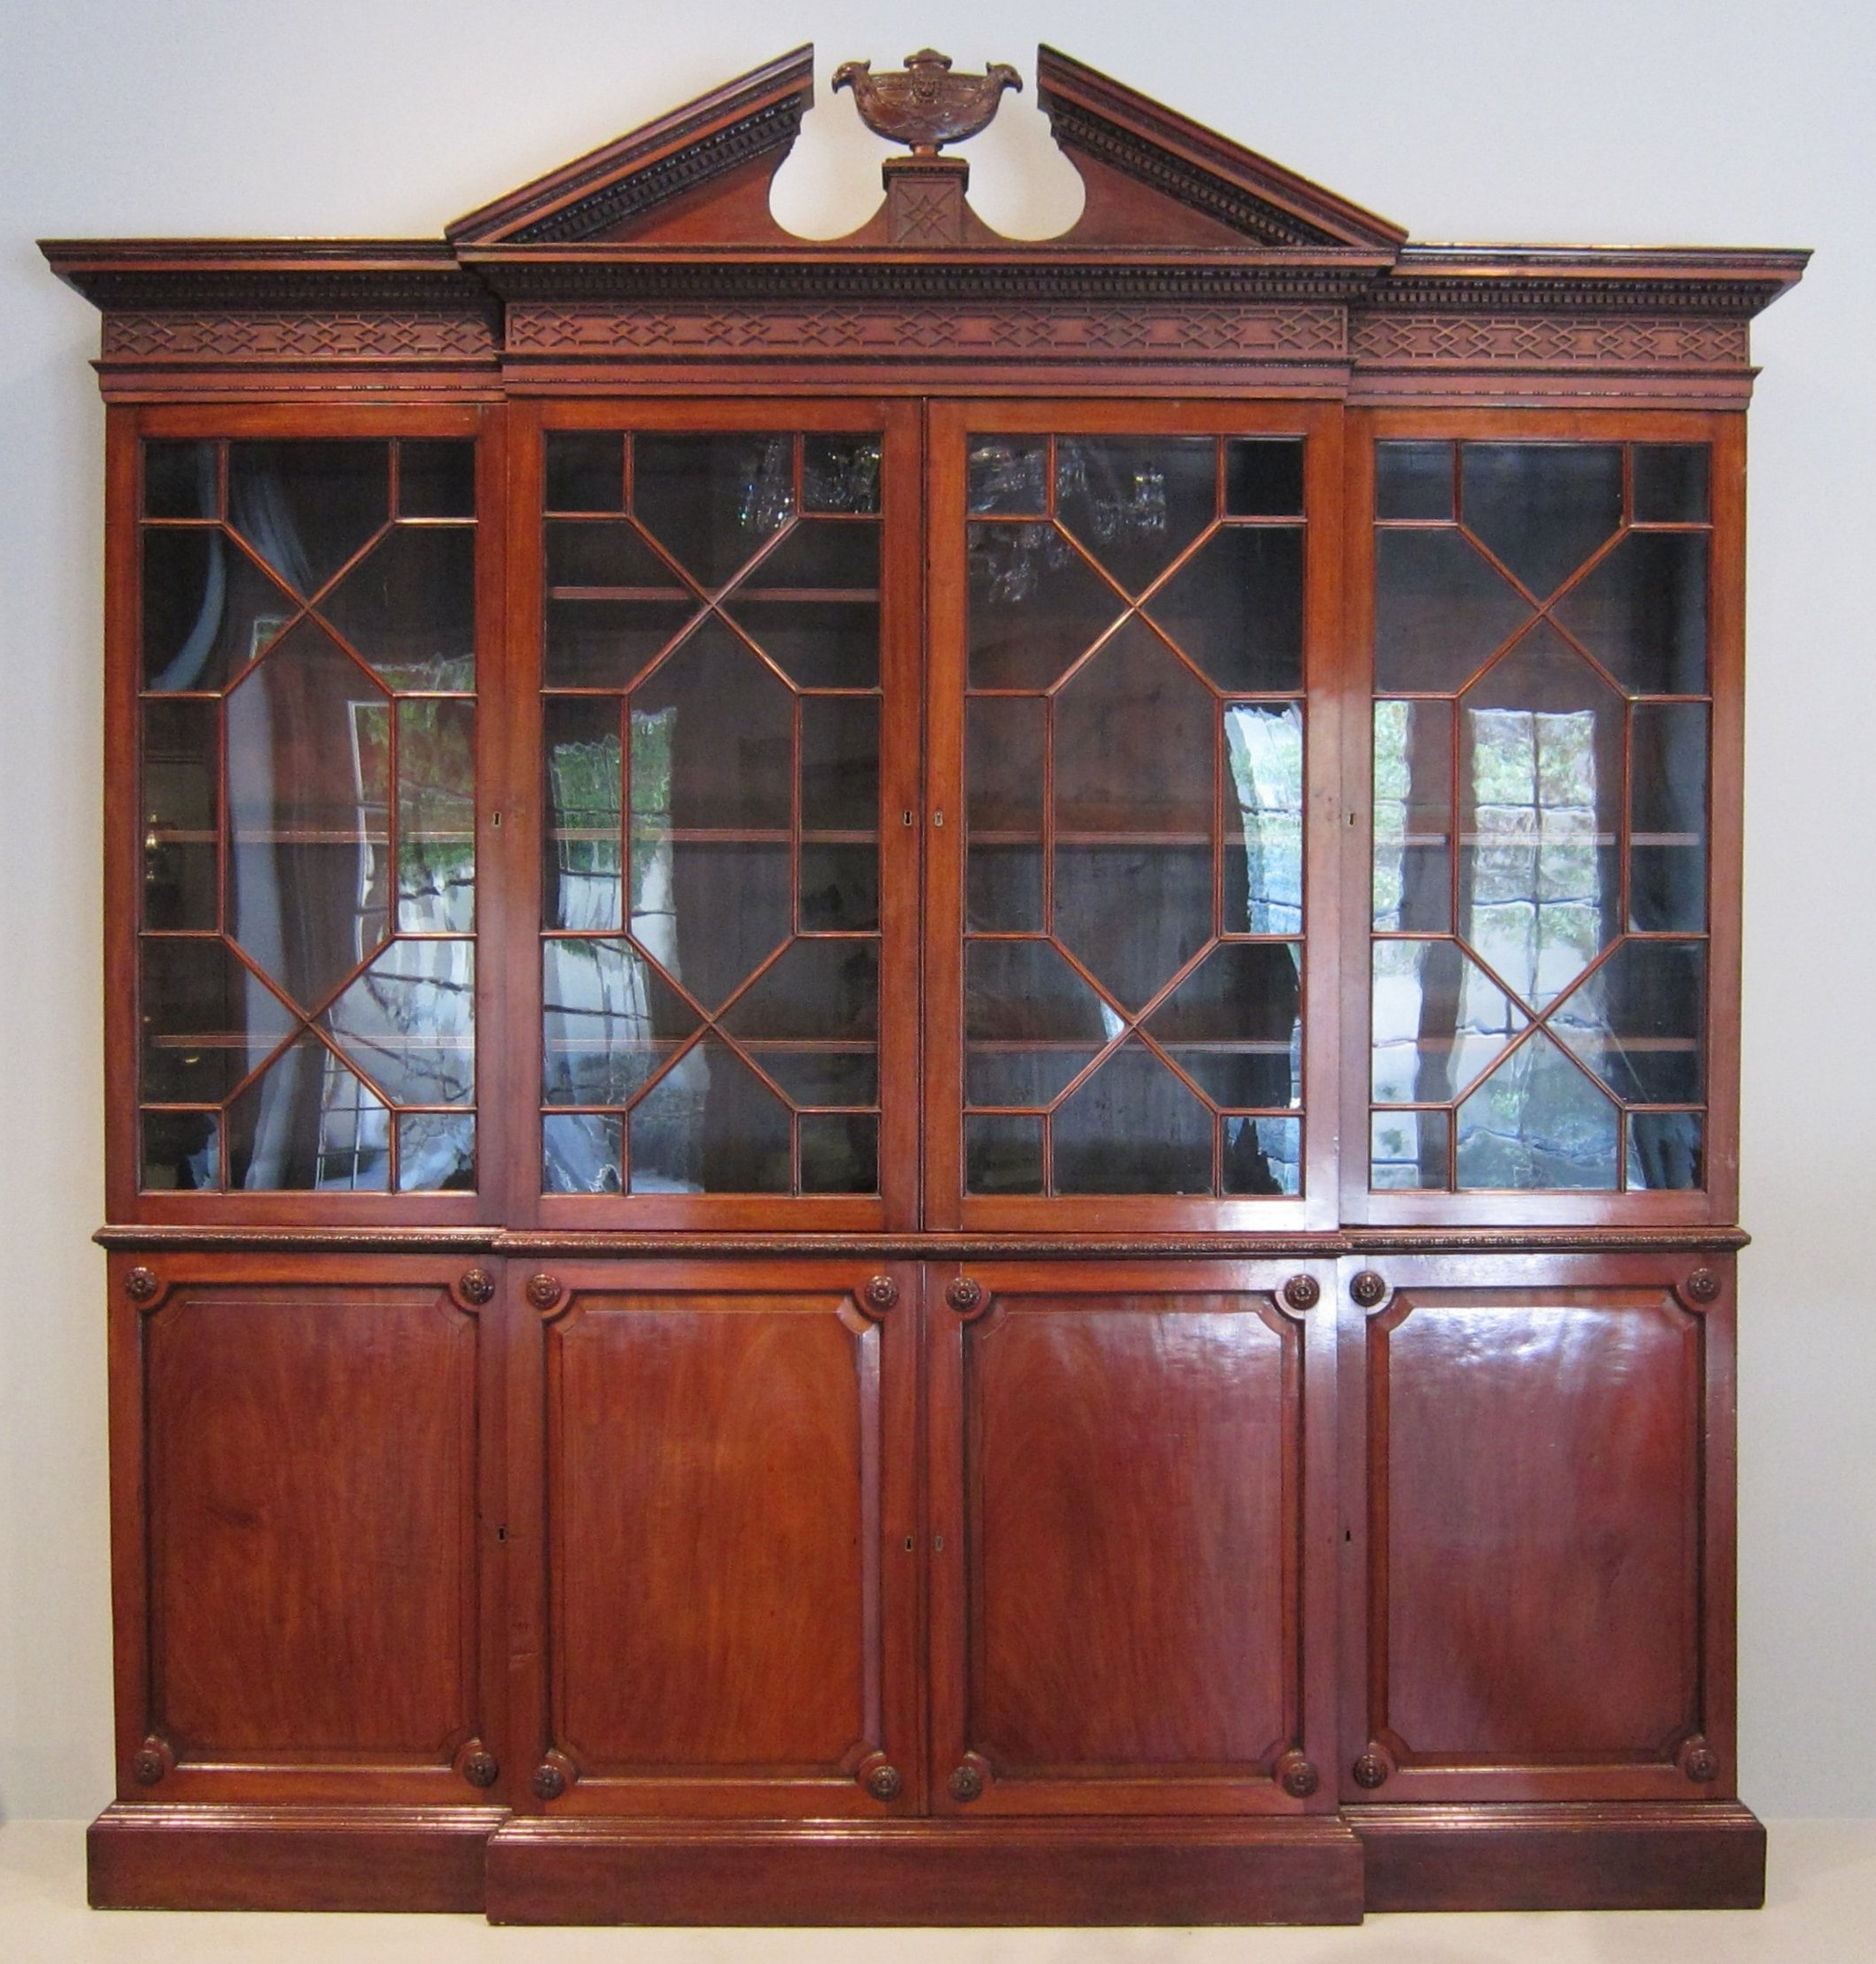 File:wla Haa Breakfront Bookcase After Thomas Chippendale Intended For Current Breakfront Bookcases (View 5 of 15)